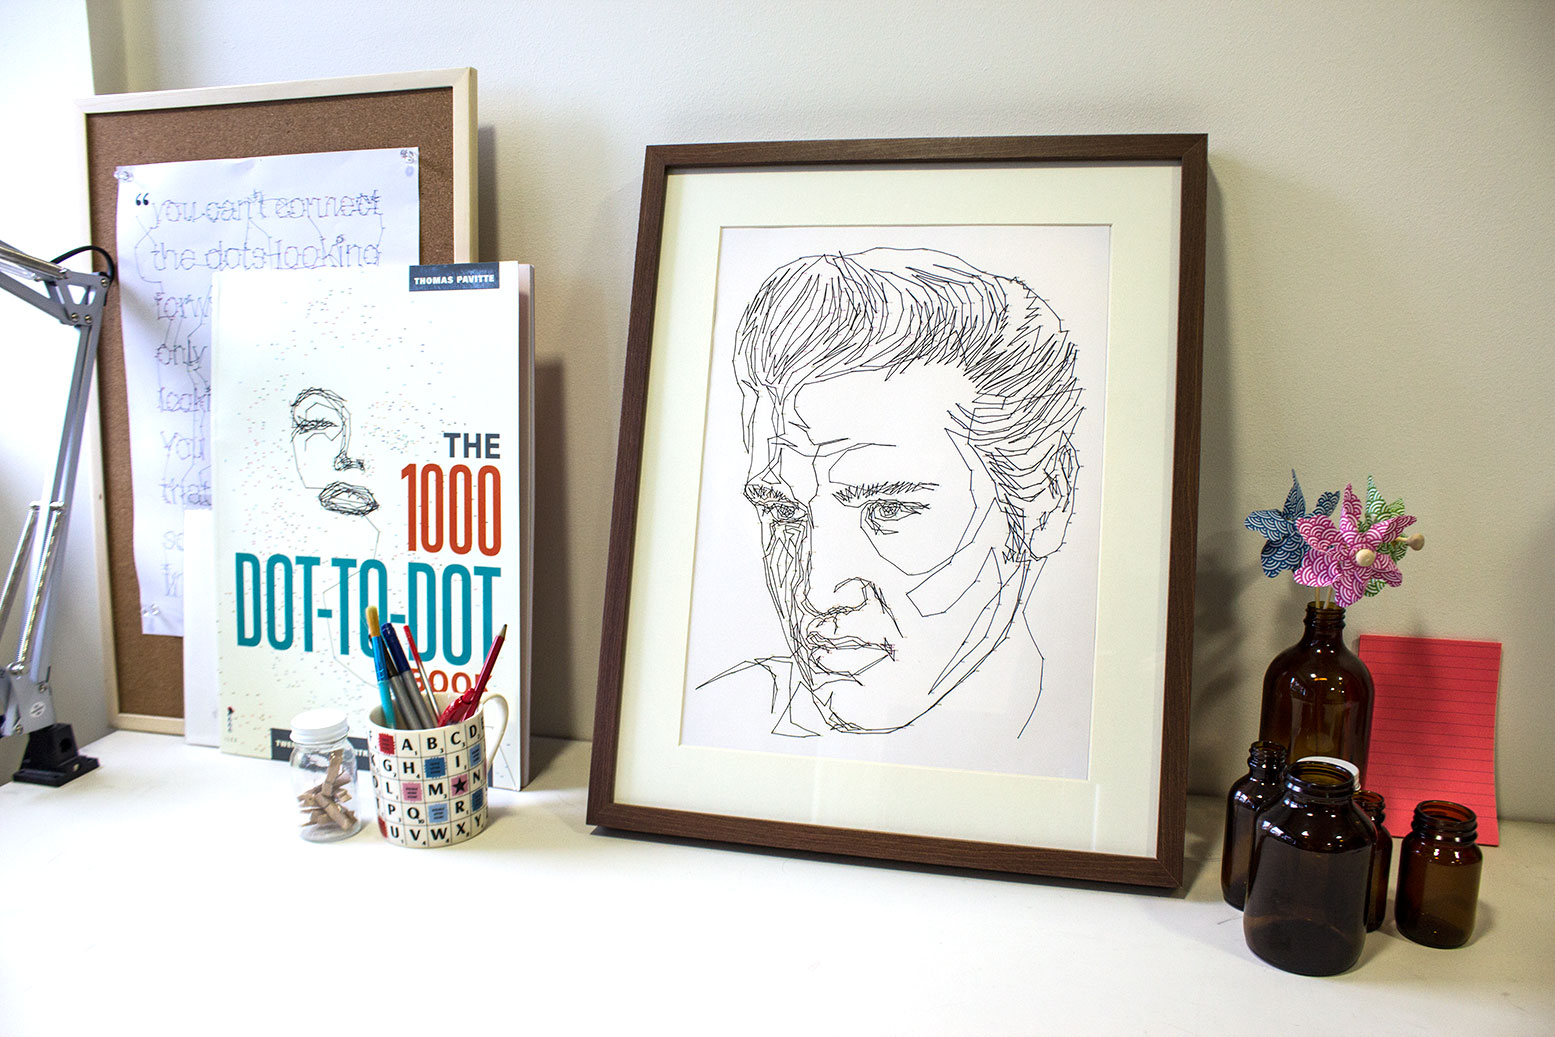 My first published book—The 1000 Dot-to-dot Book featuring 20 iconic portraits and 1000 dots each.